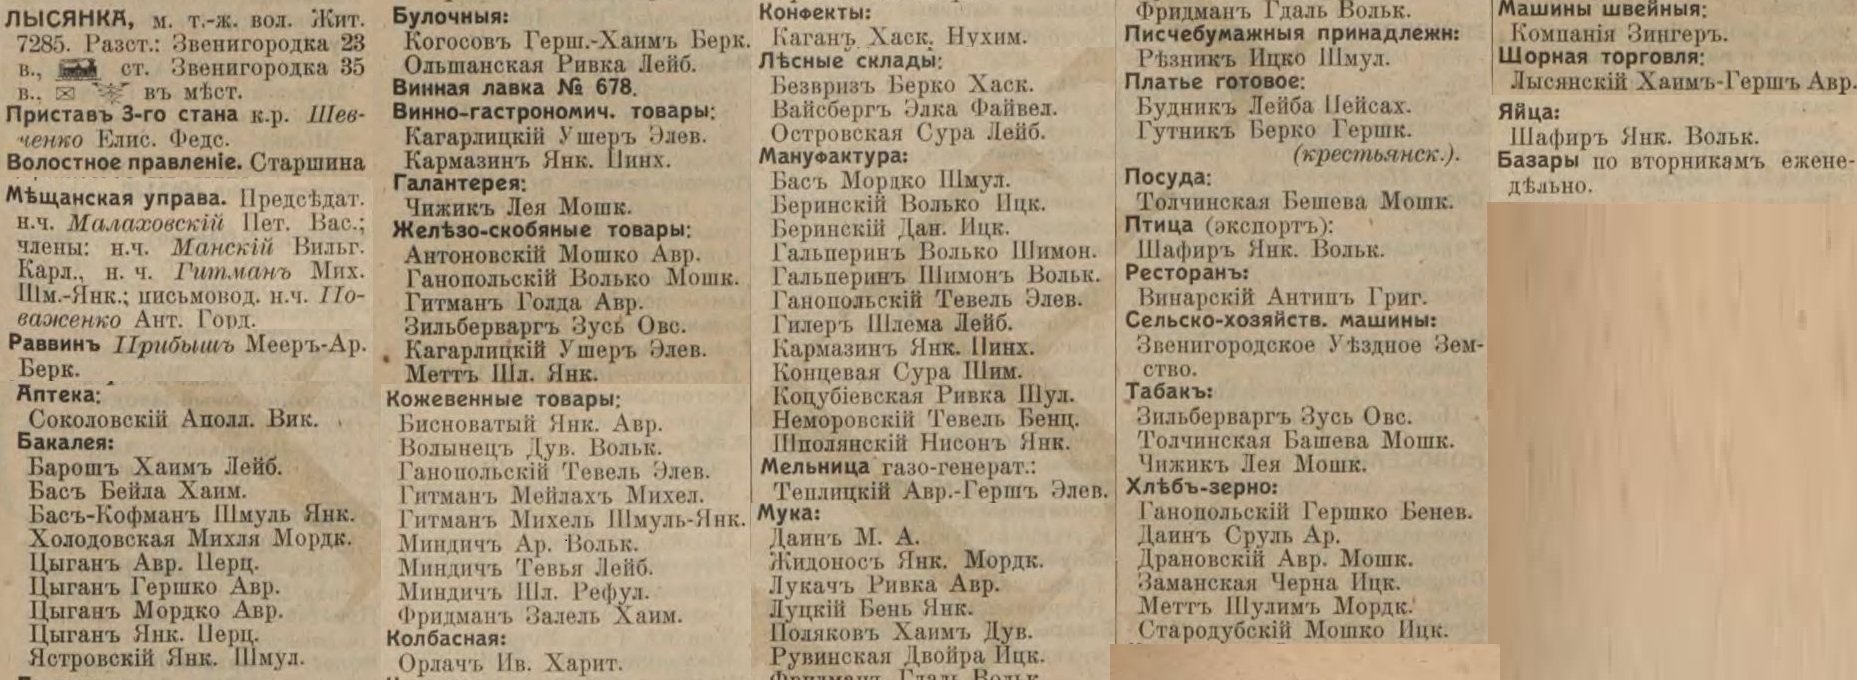 Lisyanka entrepreneurs list from Russian Empire Business Directories by 1913